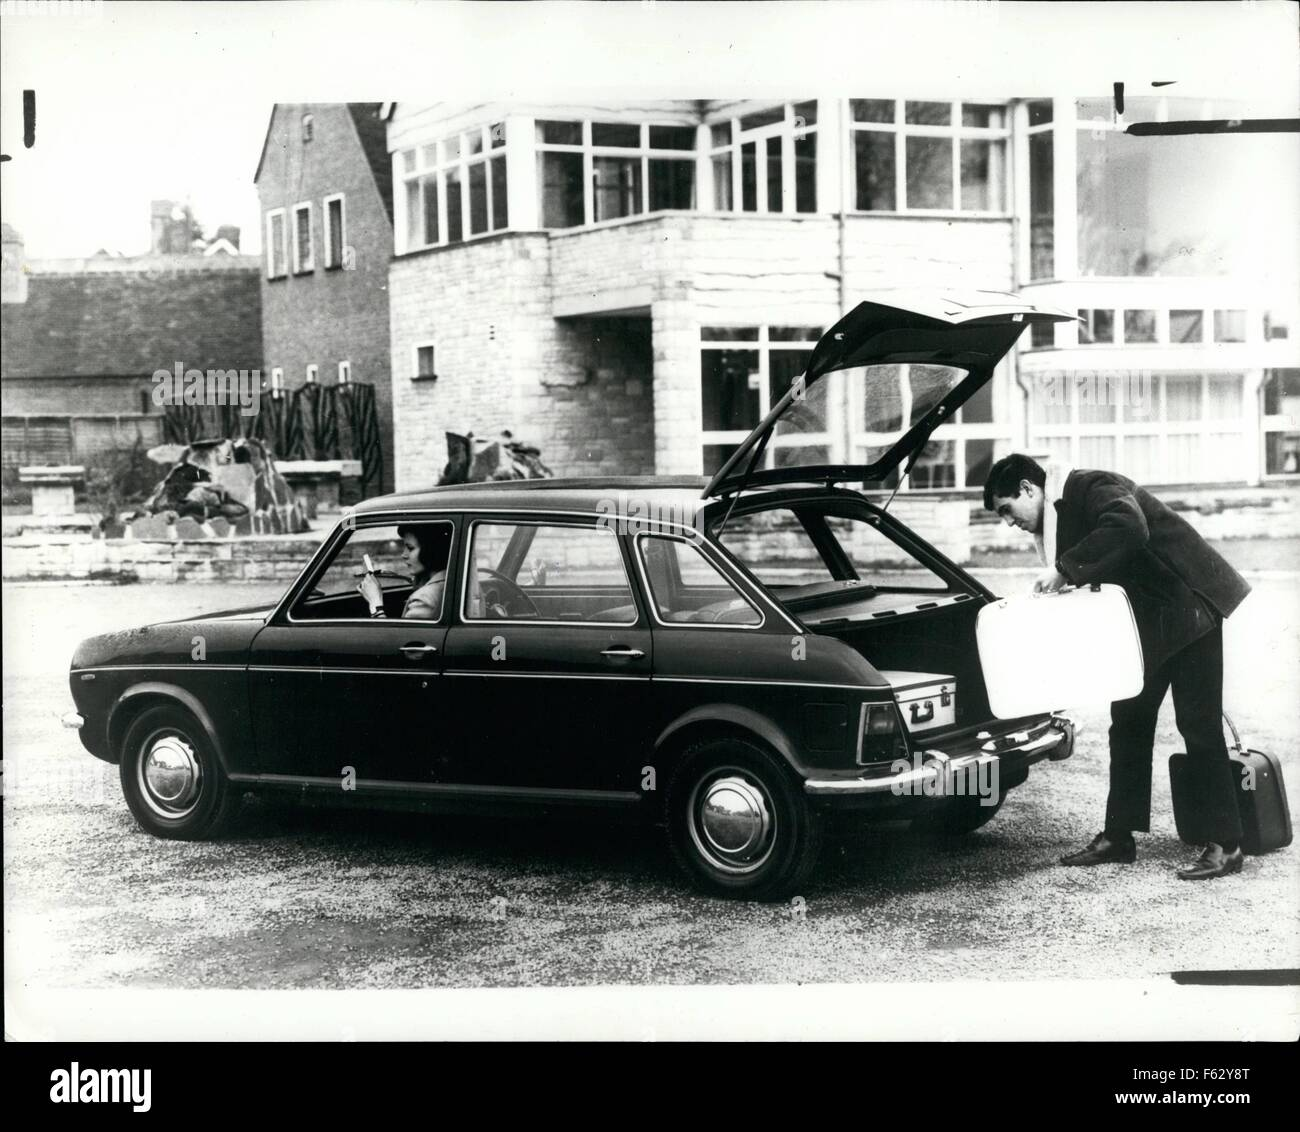 Overhead Camshaft Stock Photos Images Alamy 1969 Cb175 Wiring Diagram 1968 The Austin Maxi British Leylands New 1500 Saloon